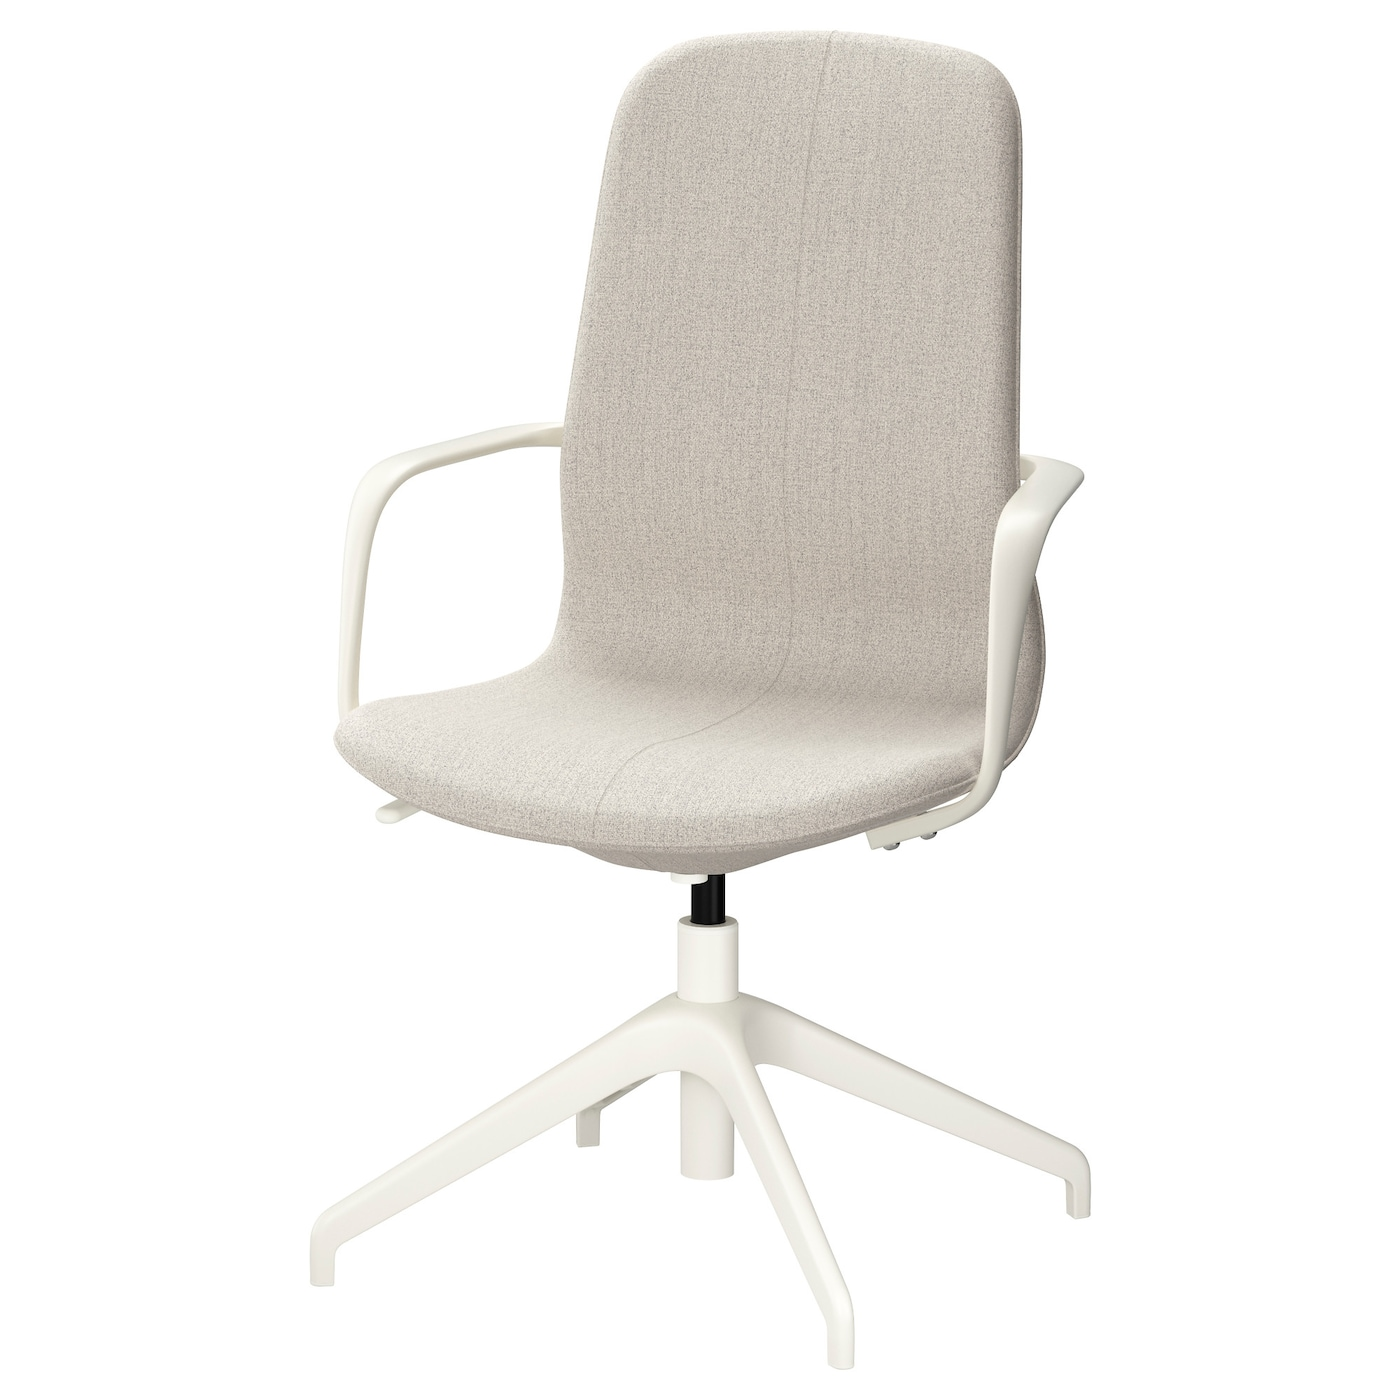 Swivel chairs spinning chairs ikea for Ikea white swivel chair